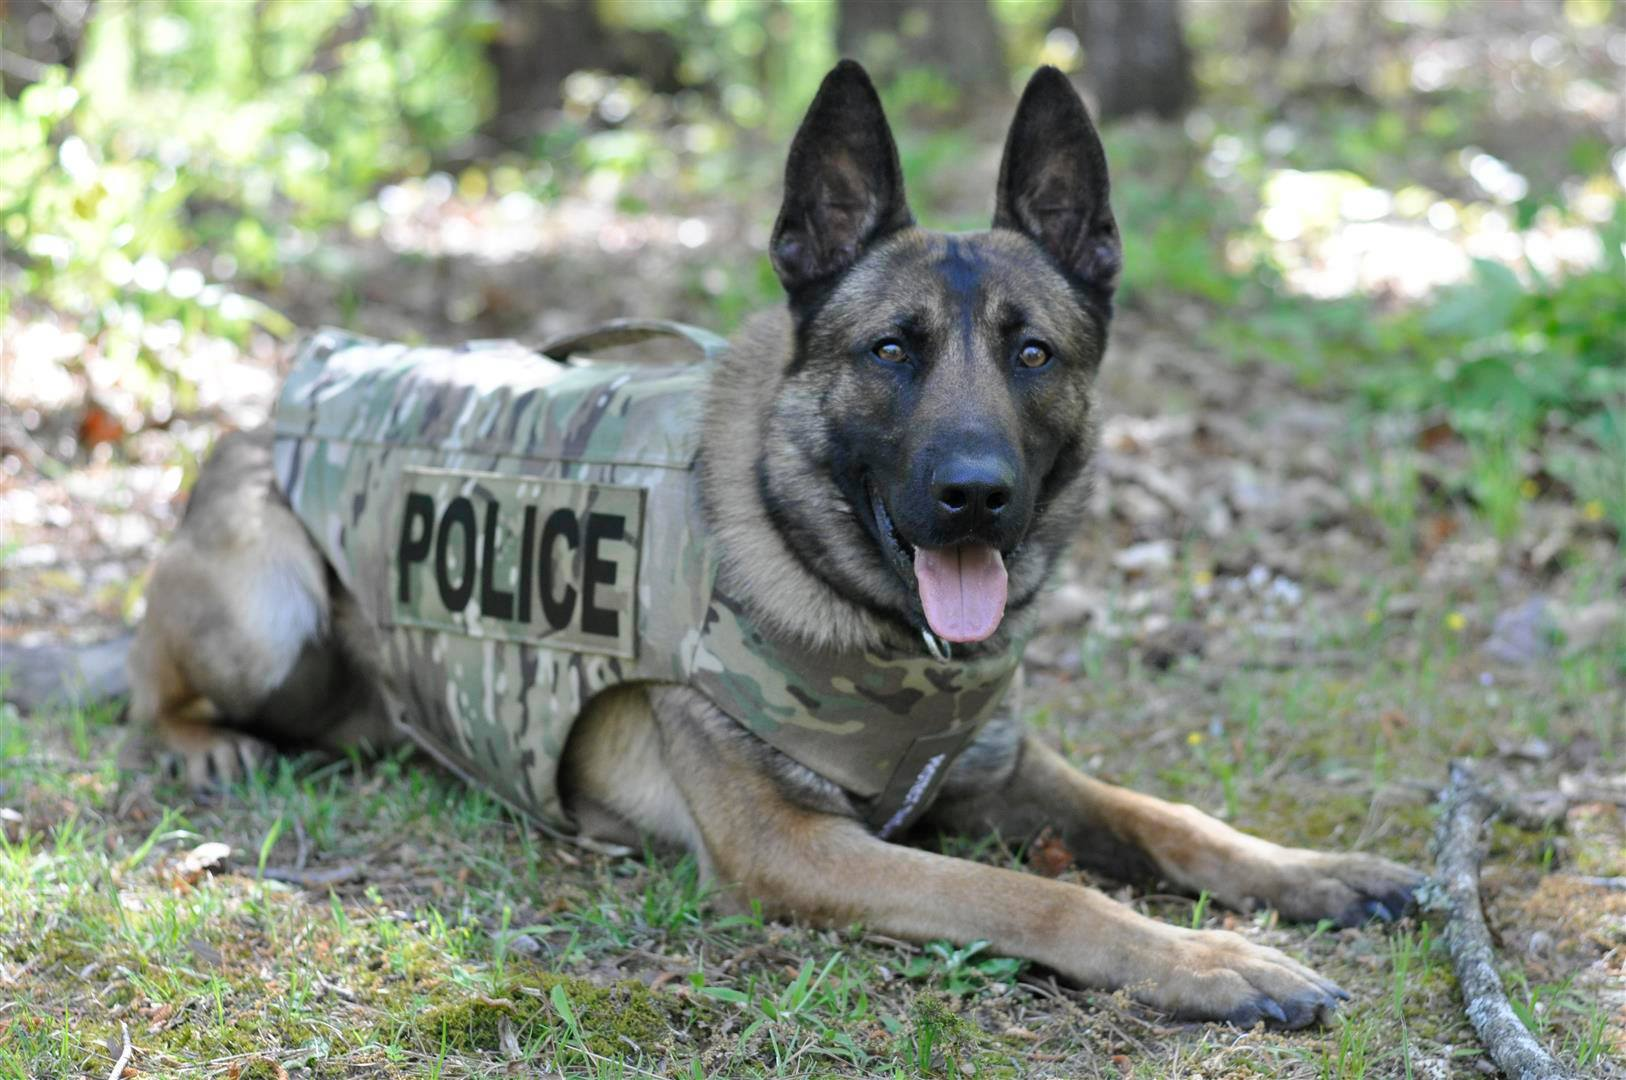 Trussville police dog receives body armor from non-profit group